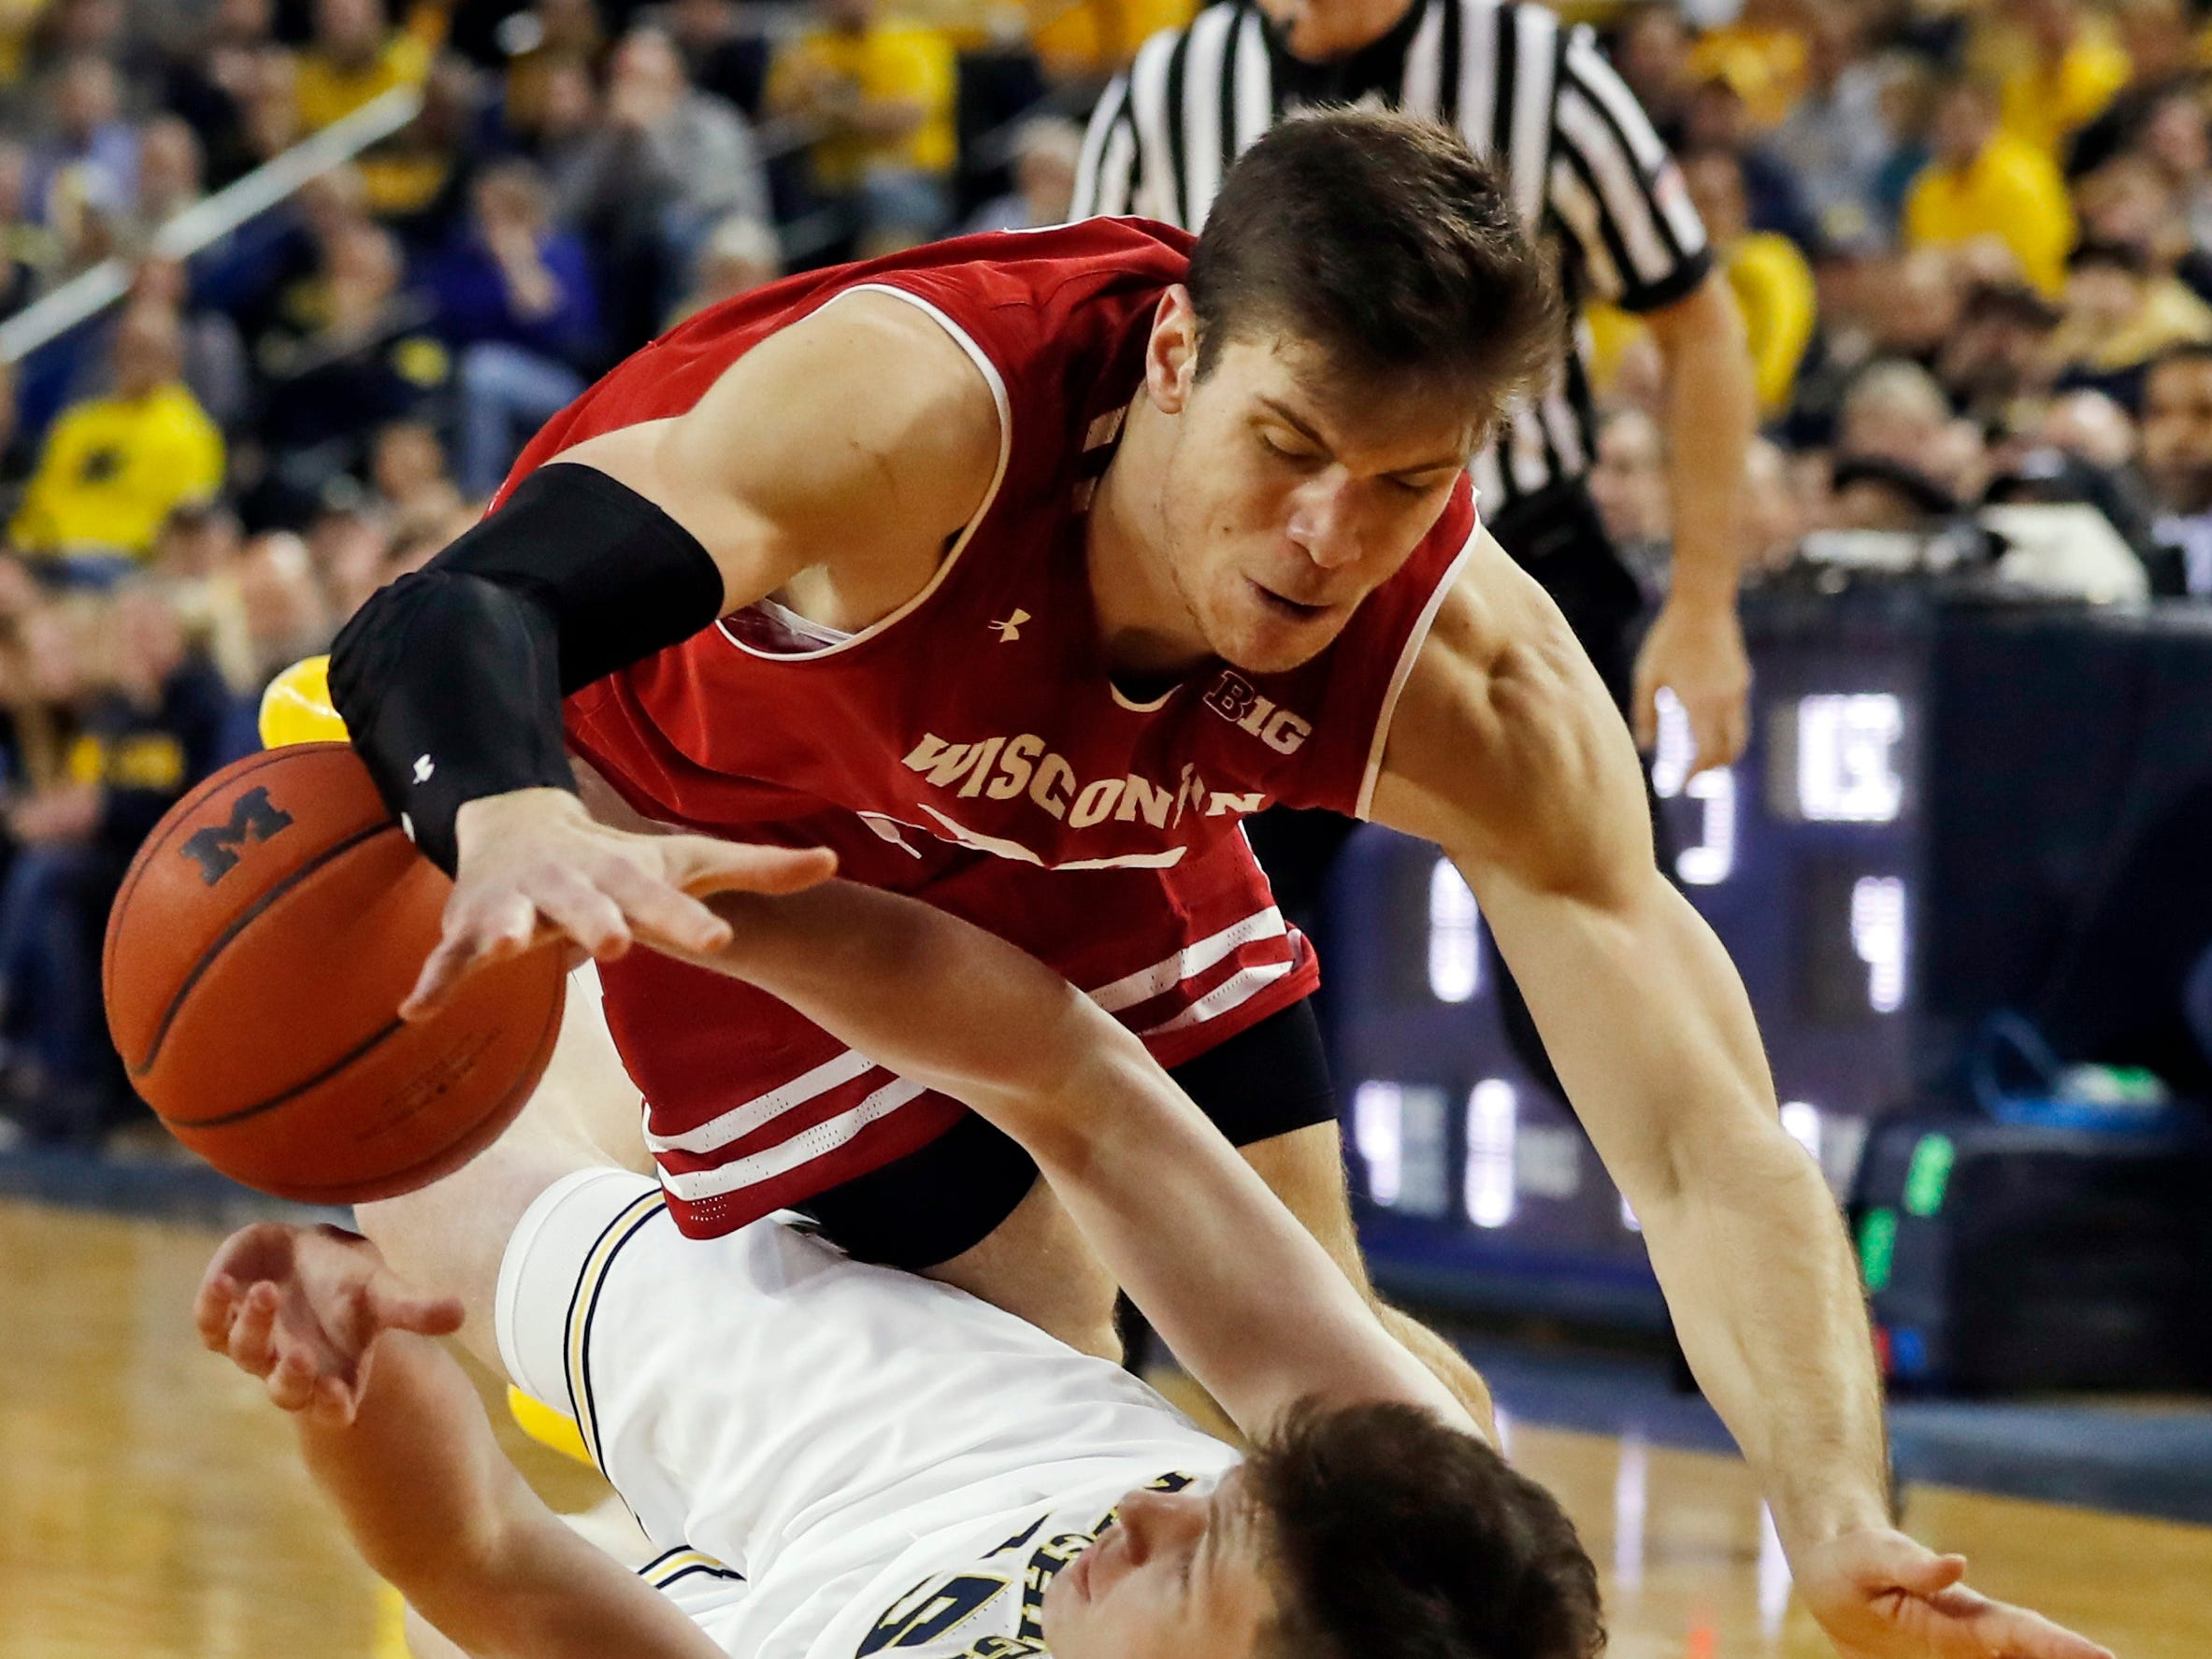 Wisconsin forward Ethan Happ, and Michigan center Jon Teske chase after a loose ball.